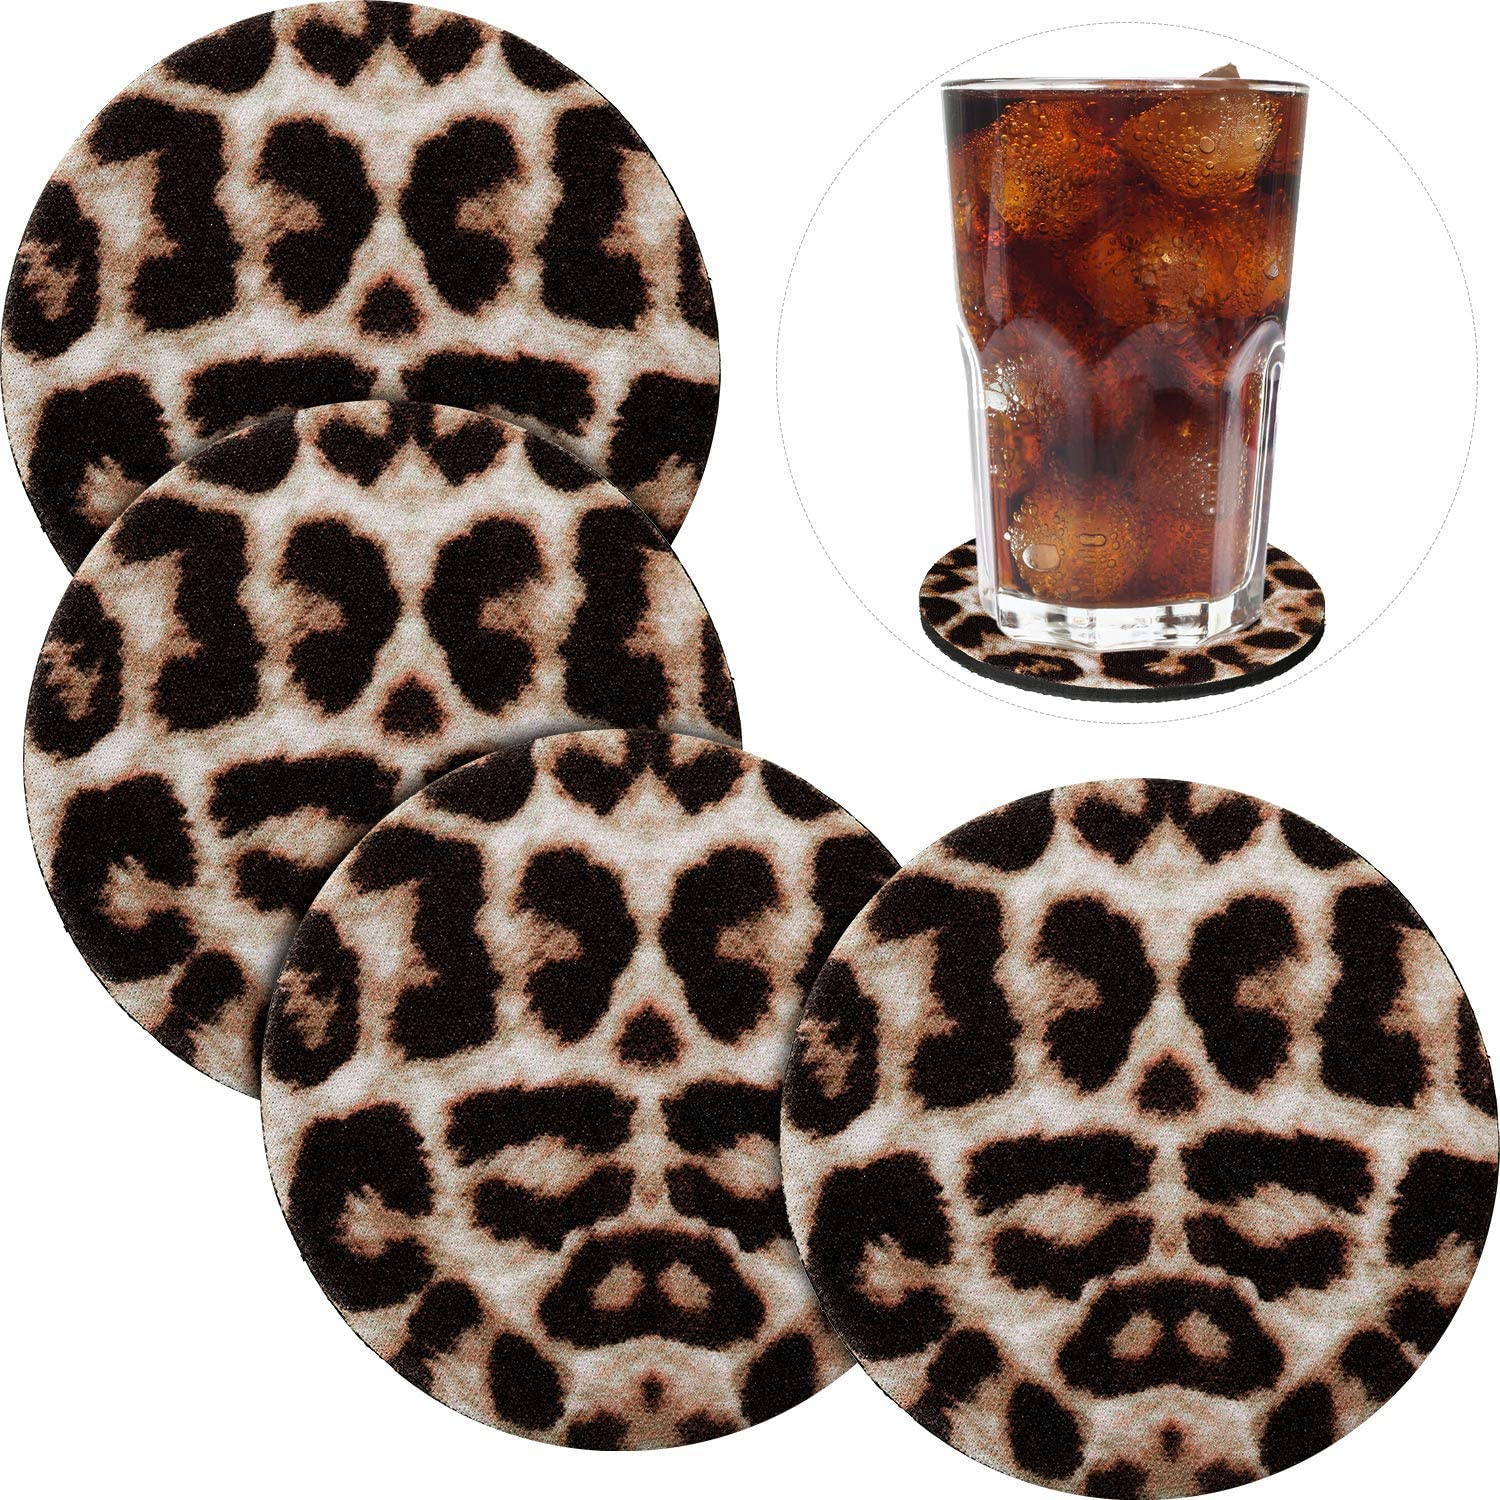 4 Pieces 3.54 Inch Leopard Coasters Insulated Coaster Cheetah Print Absorbent Neoprene Cup Holder Coaster for Kitchen Office Living Room Furniture Drinking Coaster